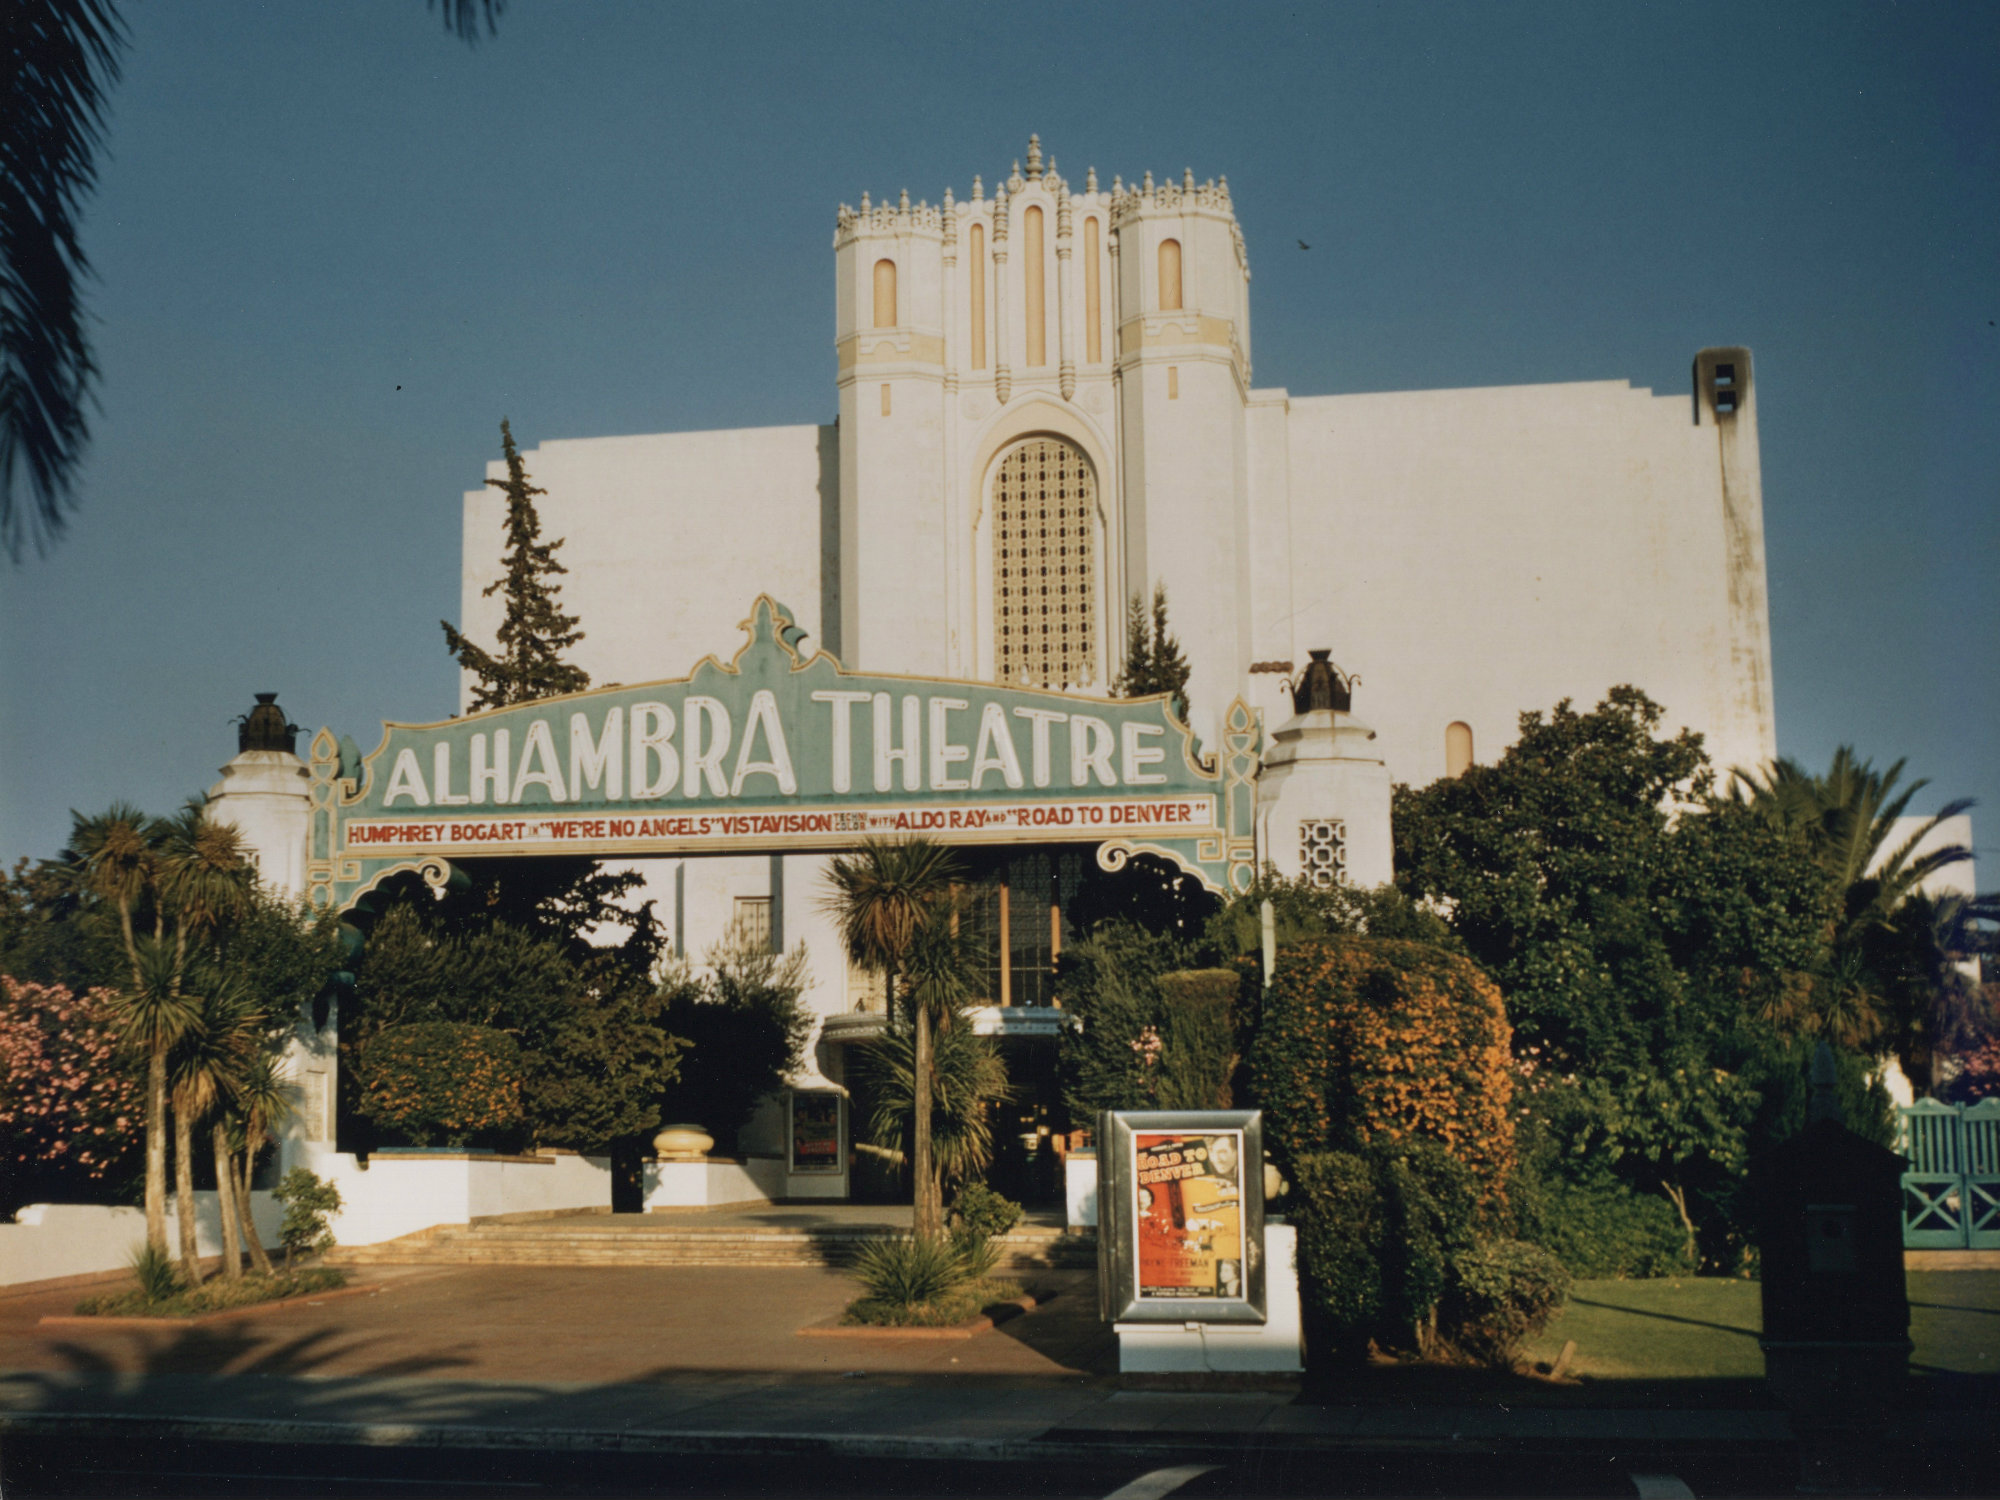 Affordable Health Care >> Alhambra Theatre Is Remembered In Documentary Screening This Weekend - capradio.org